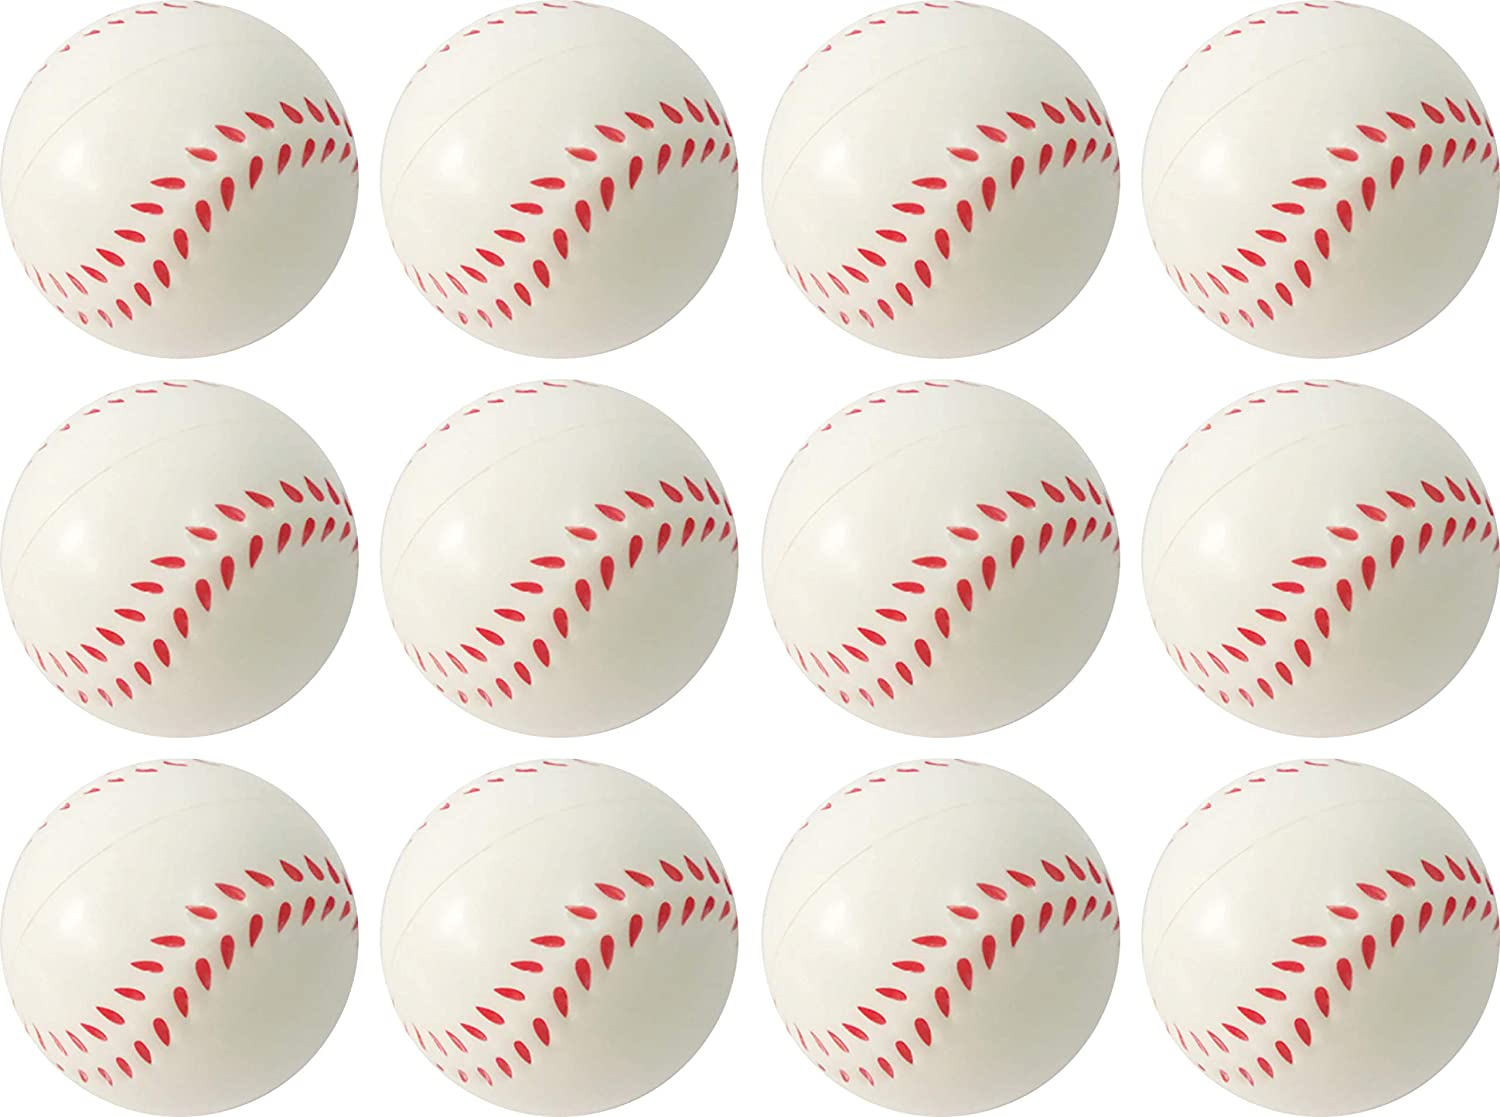 Football Baseball 12 Pack Present Avenue Mini Toy Balls for Kids Party Favor Toy Relaxation. Basketball Squeeze Foam for Stress Baseball Emoji Squeeze Ball Anxiety Relief Soccer Ball